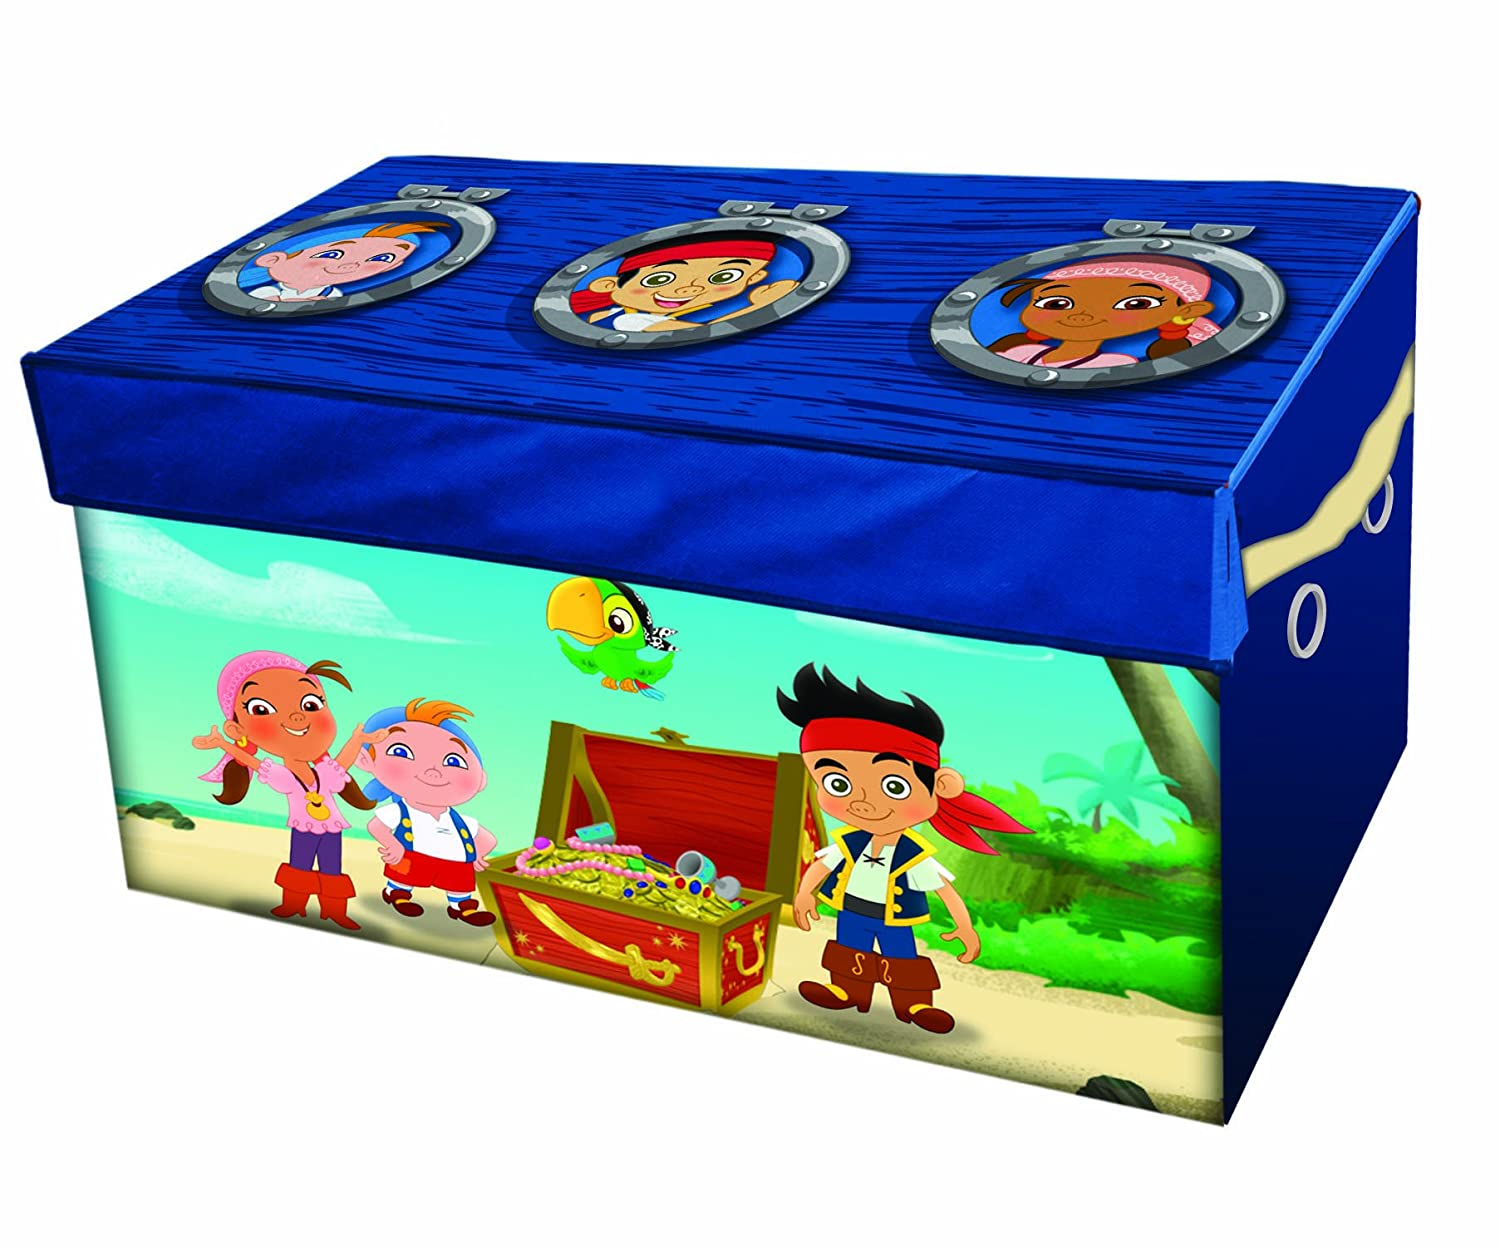 Jake and the Never Land Pirates Collapsible Storage Trunk